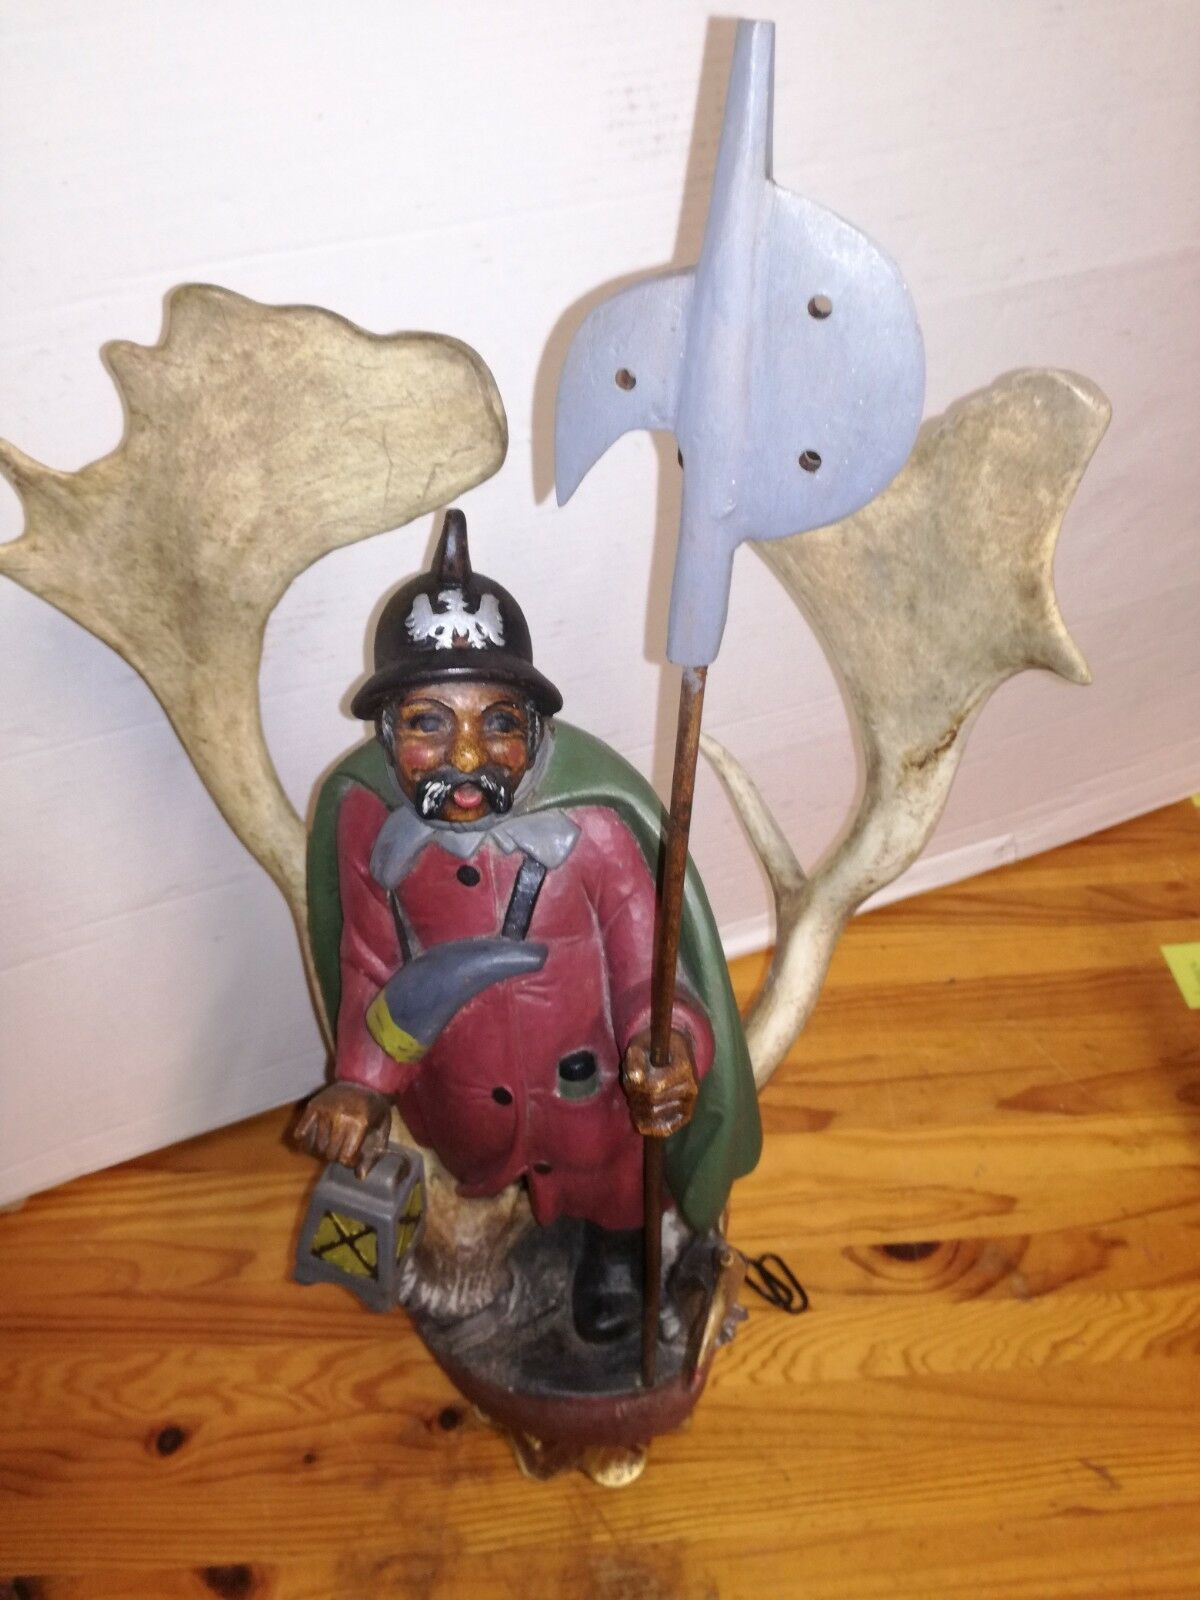 Rare Antique Germany 1930 black forest ceiling lamp wood carved Lüstermännchen image 9